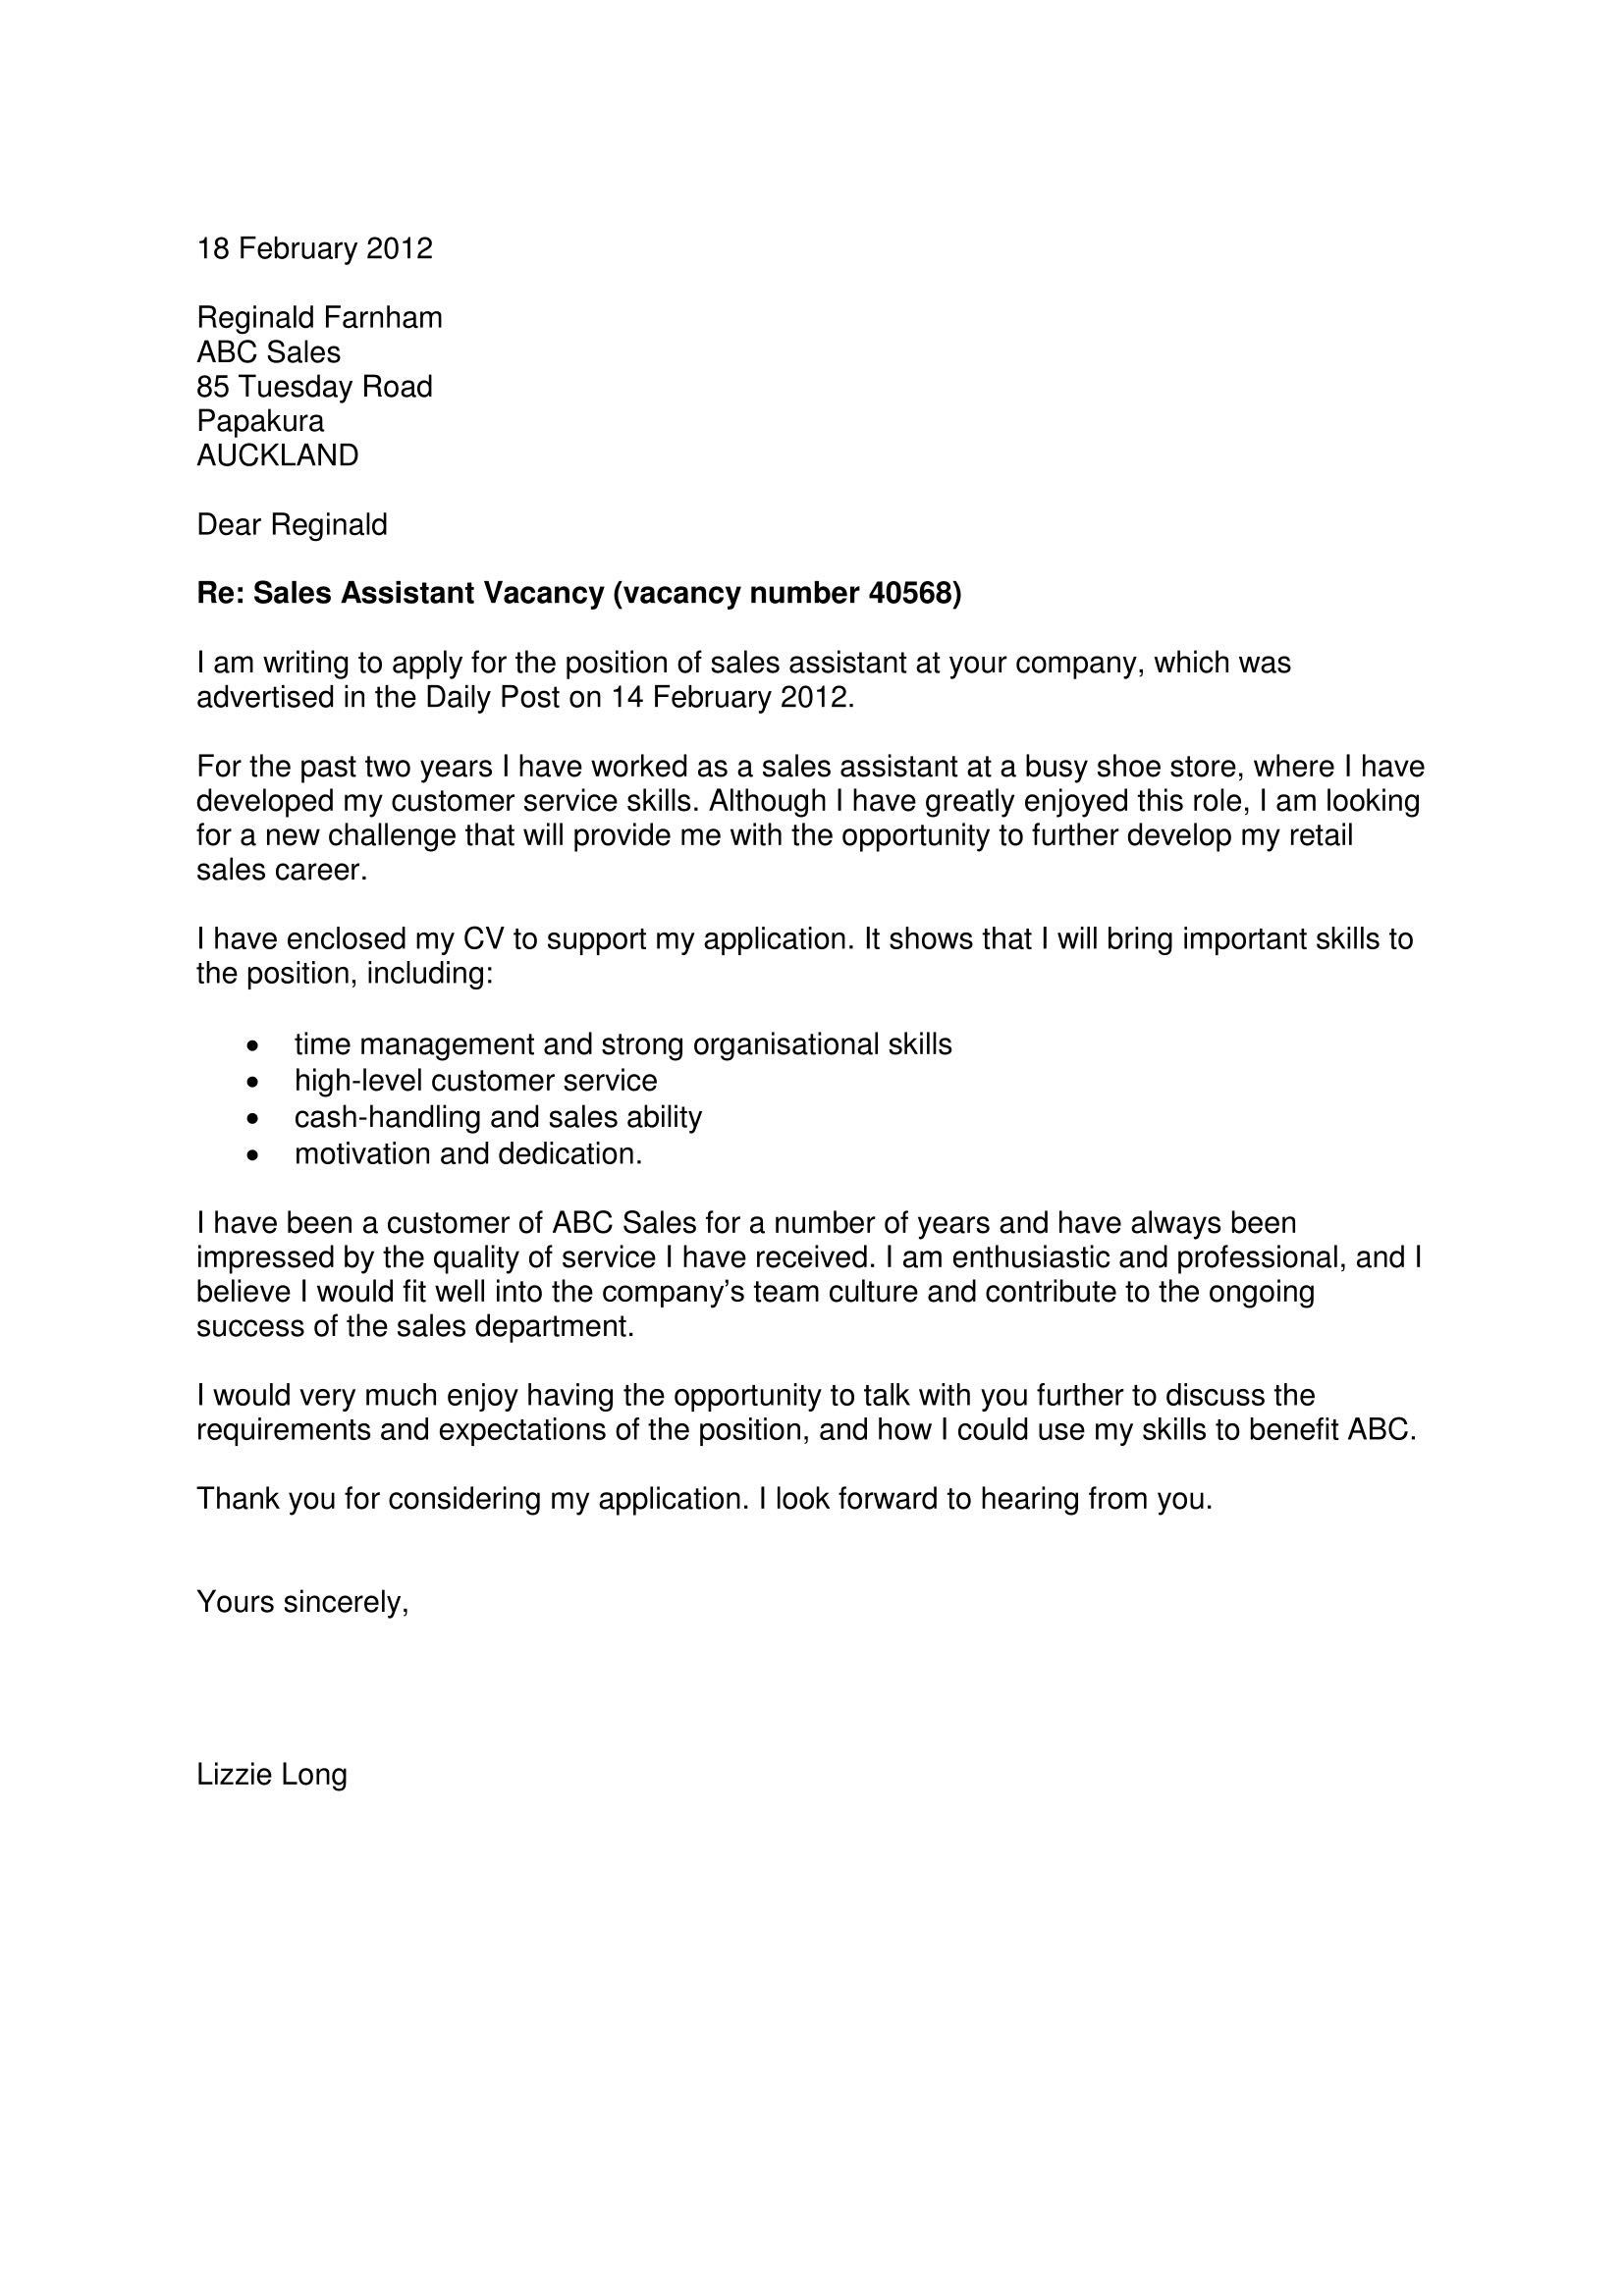 Cover Letter With Salary History Cover Letter For Resume Cover Letter Template Business Letter Format How to write a salary history